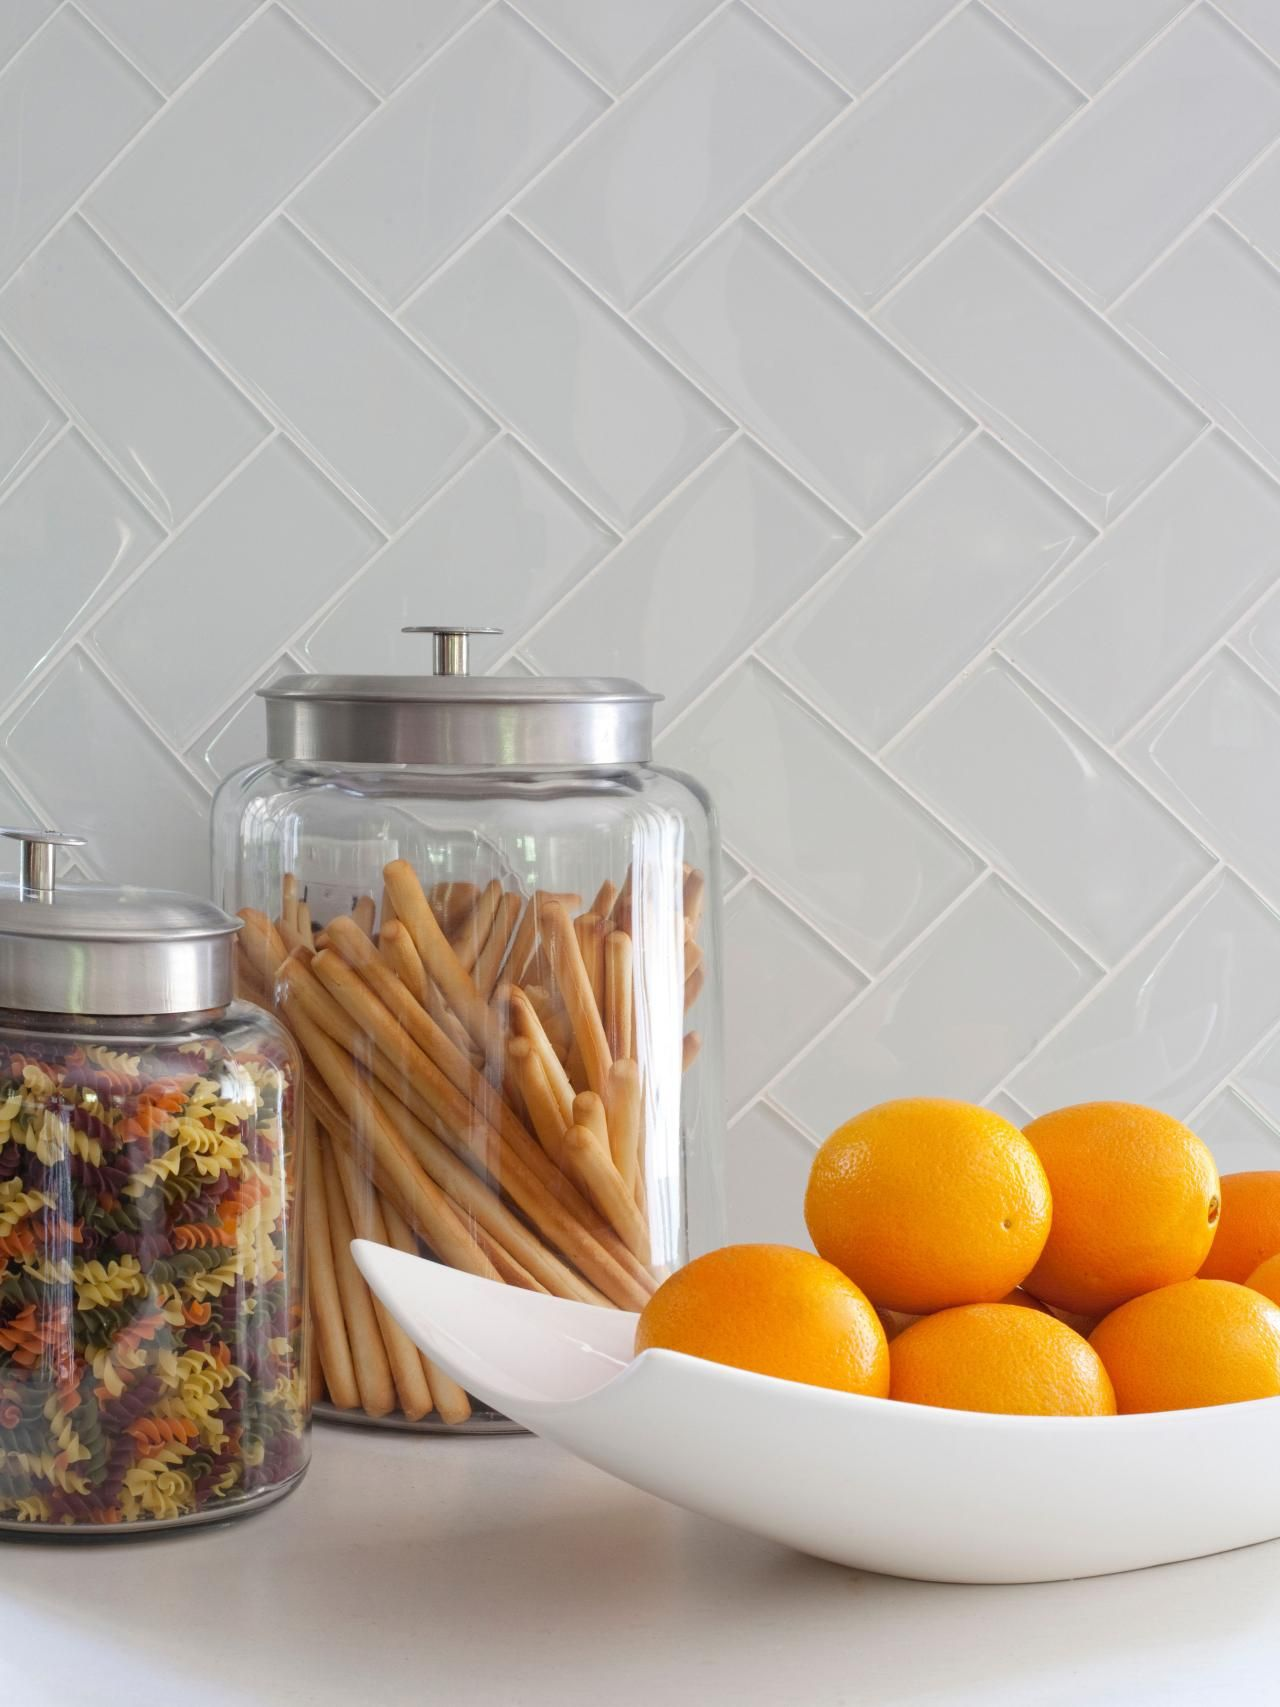 Glass tiles in  herringbone pattern create statement the new open kitchen also